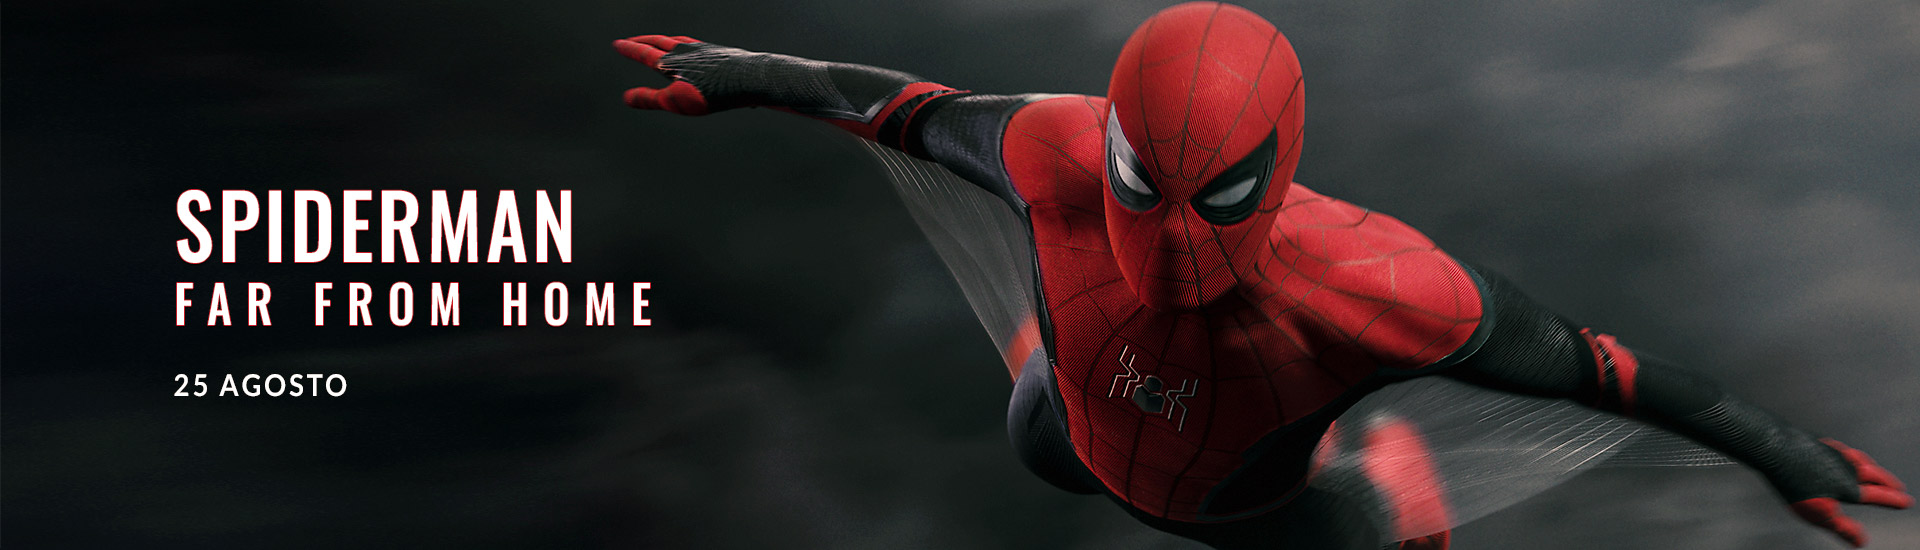 Spiderman Far From Home banner